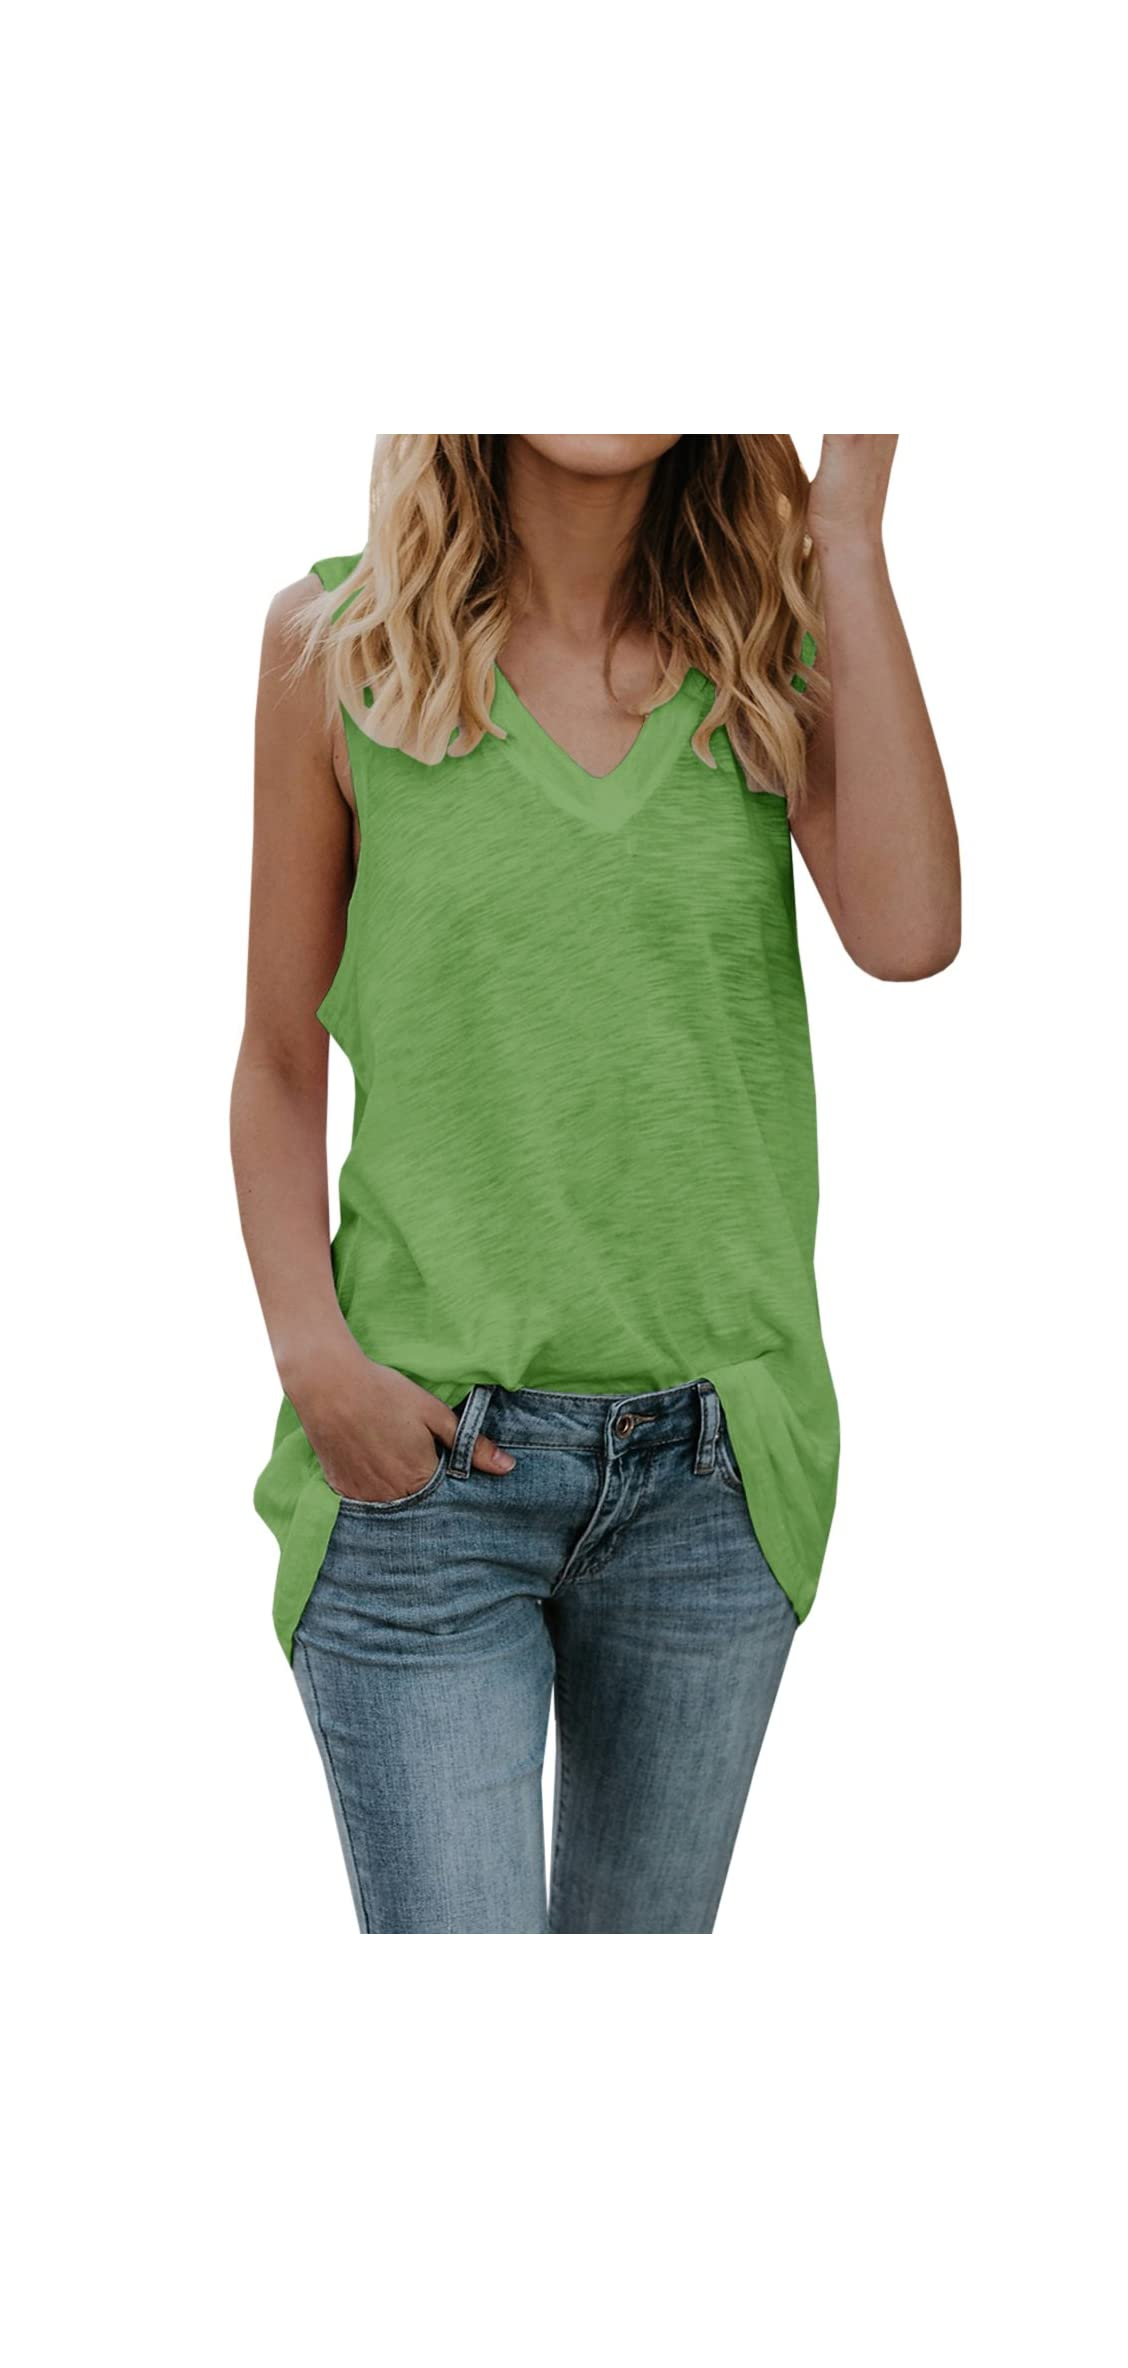 Womens Sleeveless Tank Tops V Neck T-shirts Casual Fit